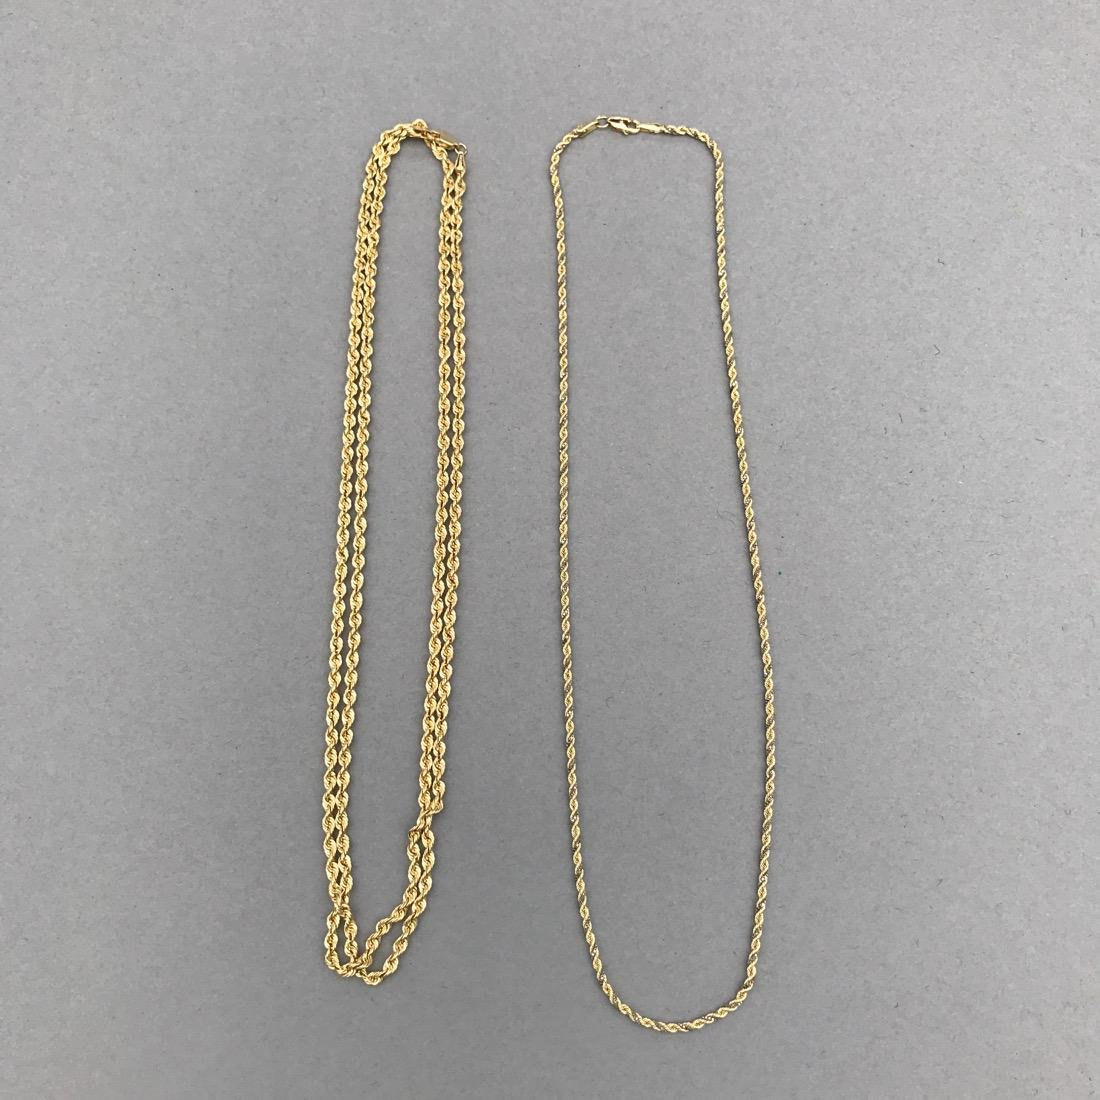 2 14K Gold Twisted Chain Necklaces - 5